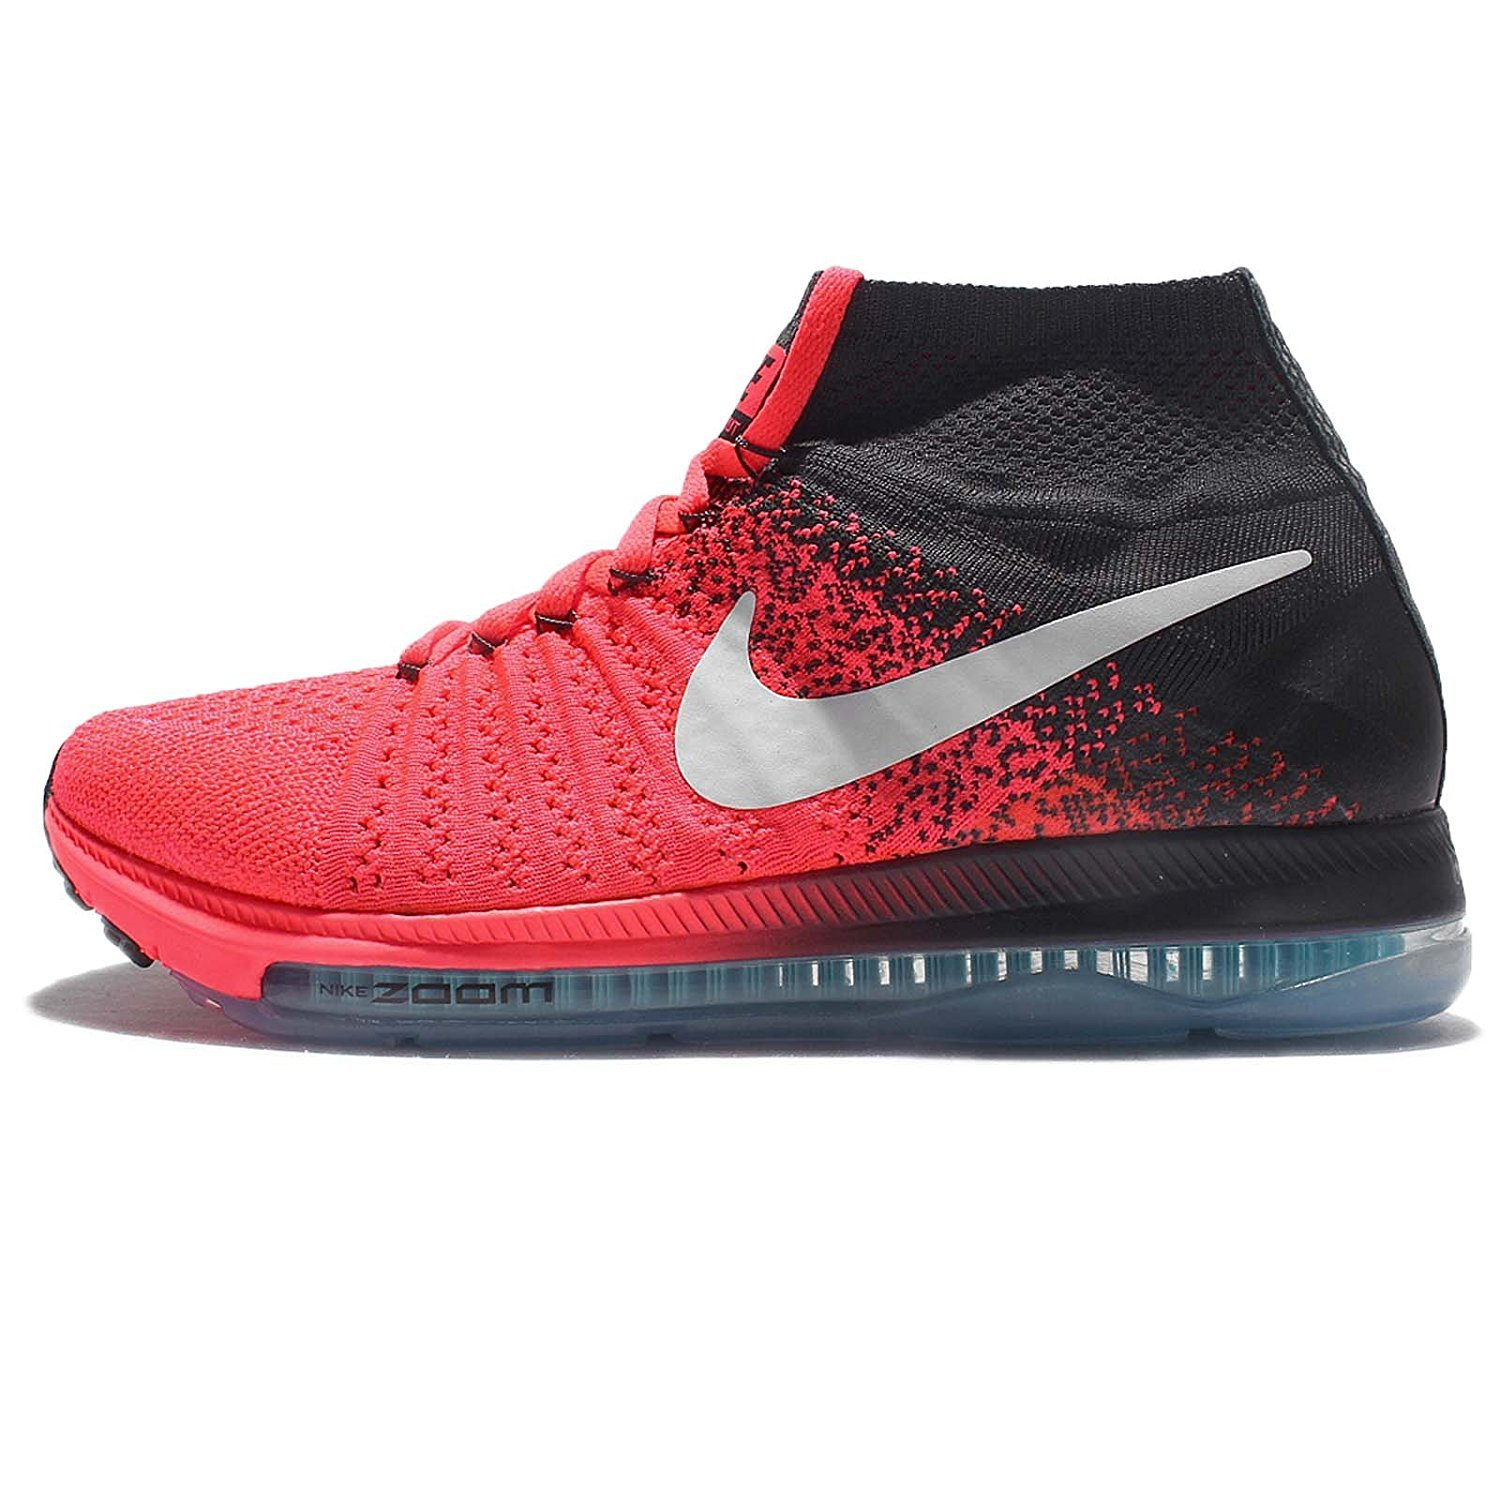 reputable site 69021 acbe4 ... shopping zapatillas para correr nike zoom rojo all para out flyknit  para b071gmkm7l mujer rojo 7fb4070